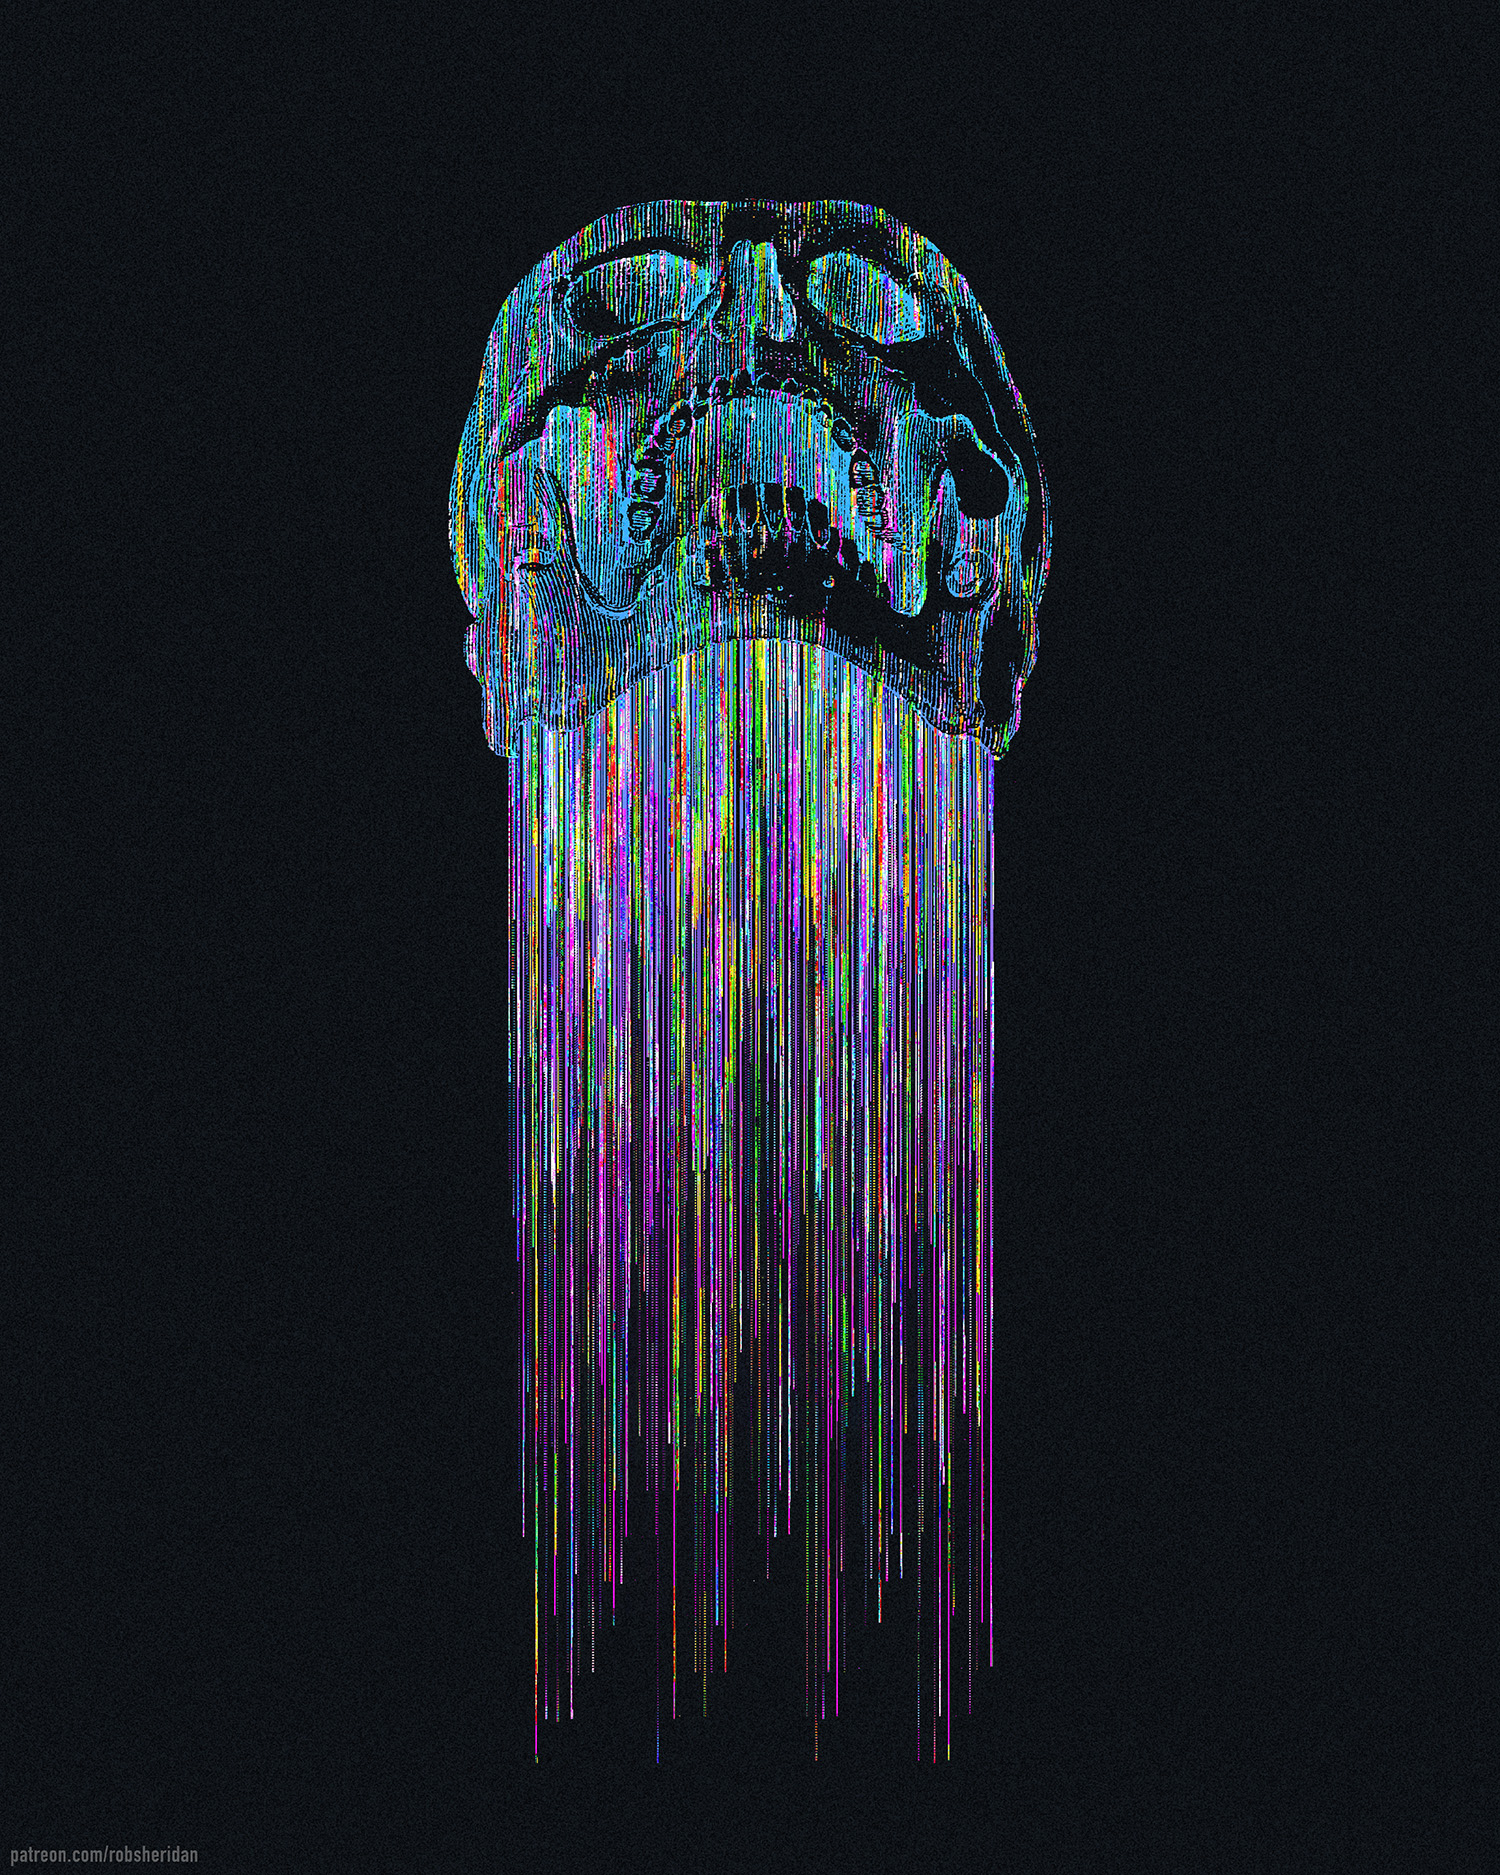 RAINBOW DEATH (VAPORWAVE)